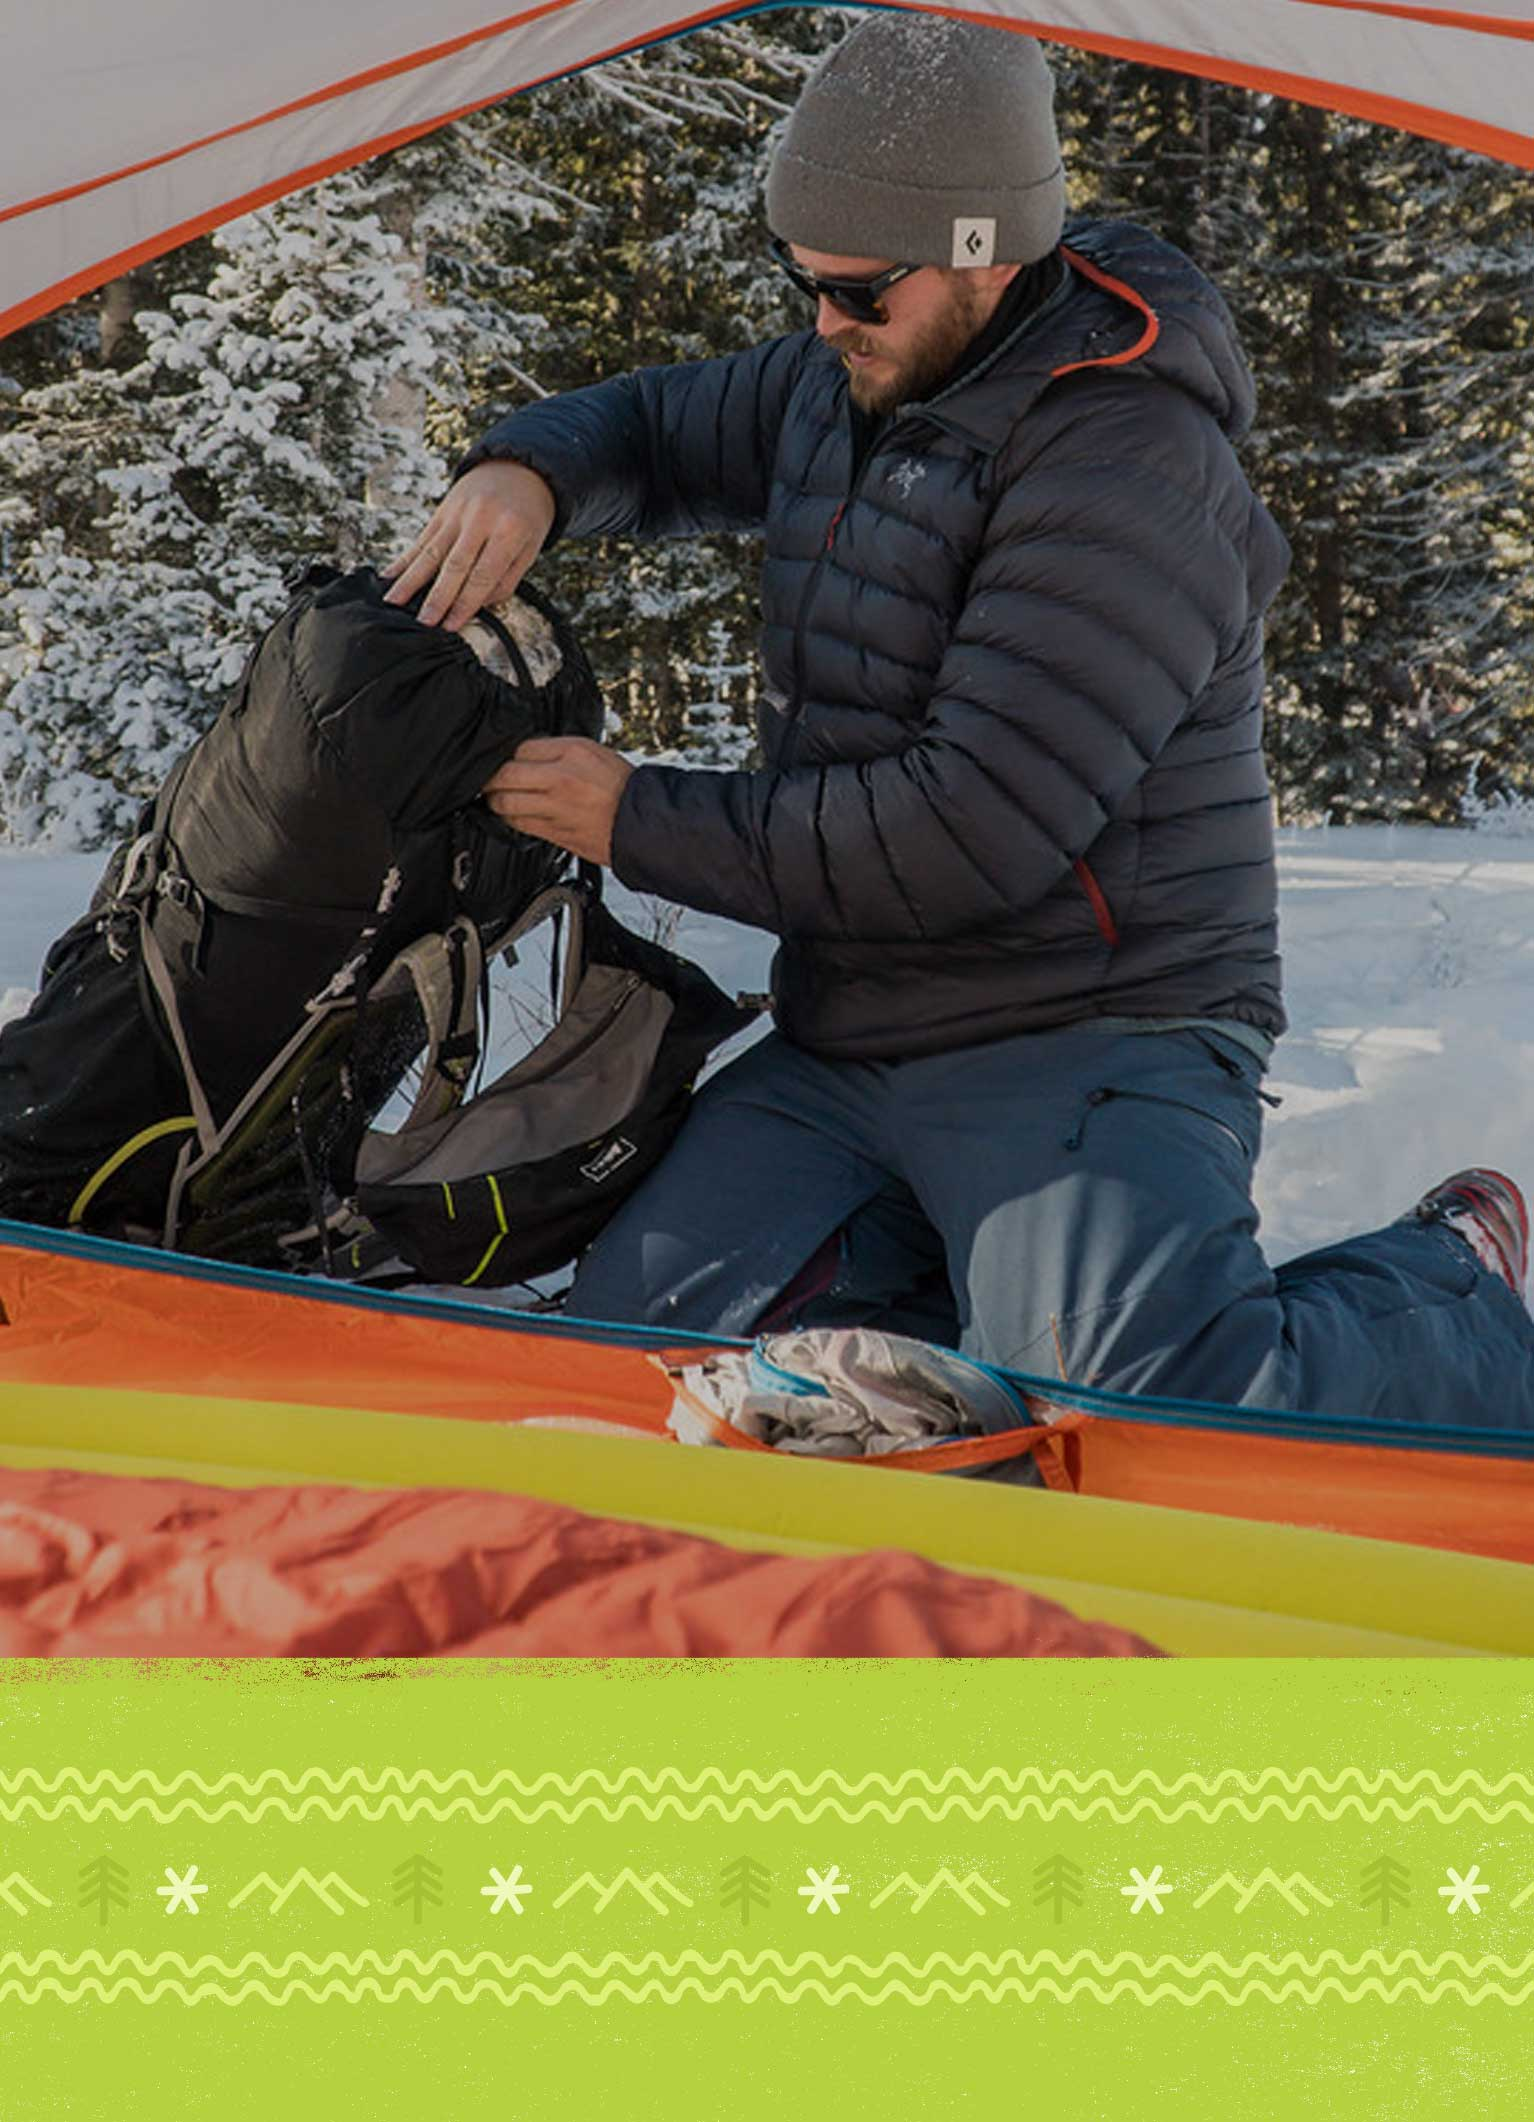 Backpacker unpacking and setting up camp in the snow